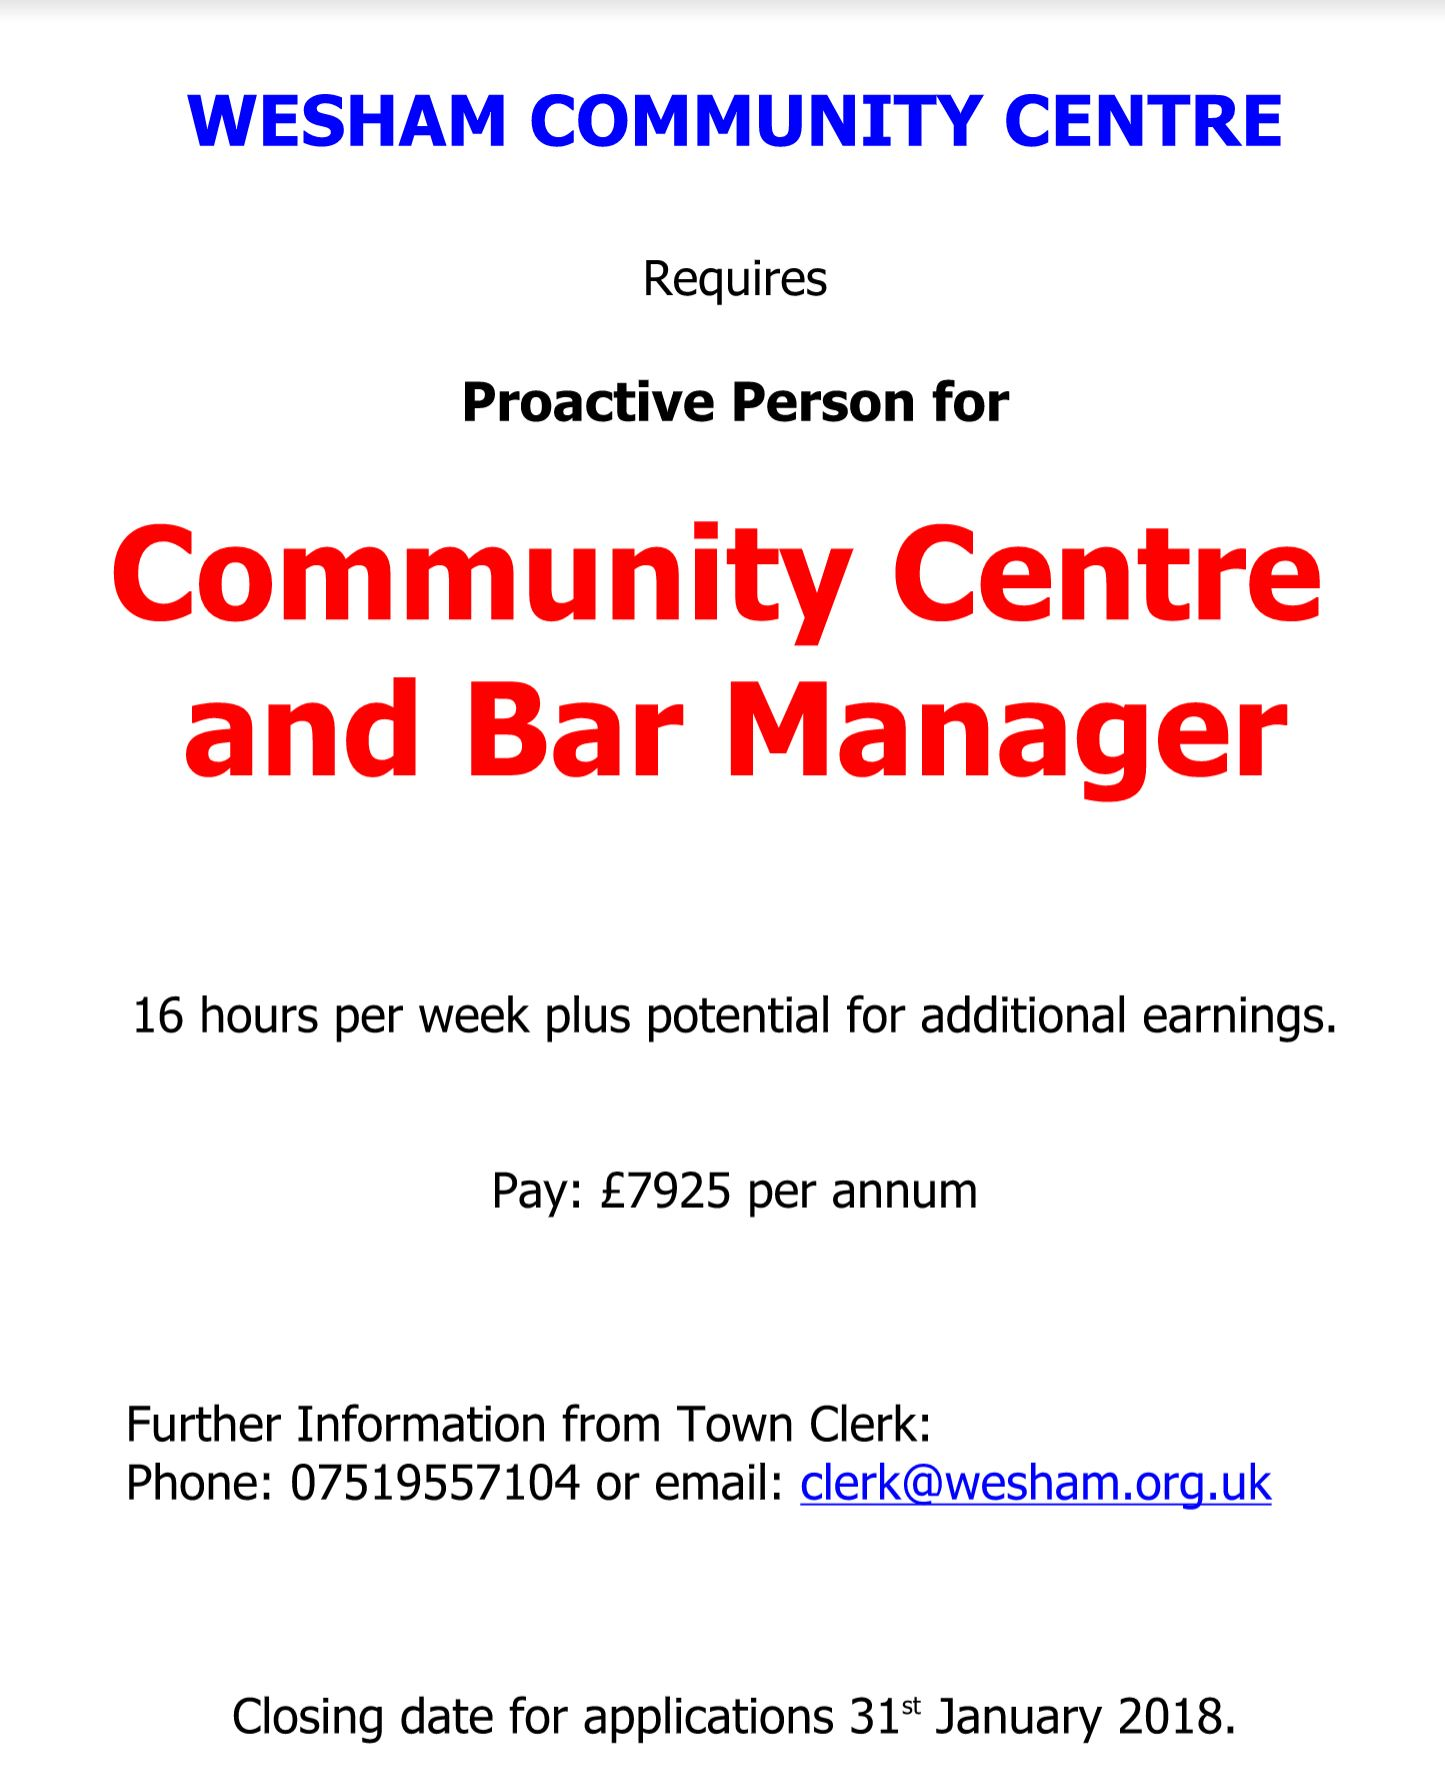 Job Opportunity: New Community Centre and Bar Manager wanted